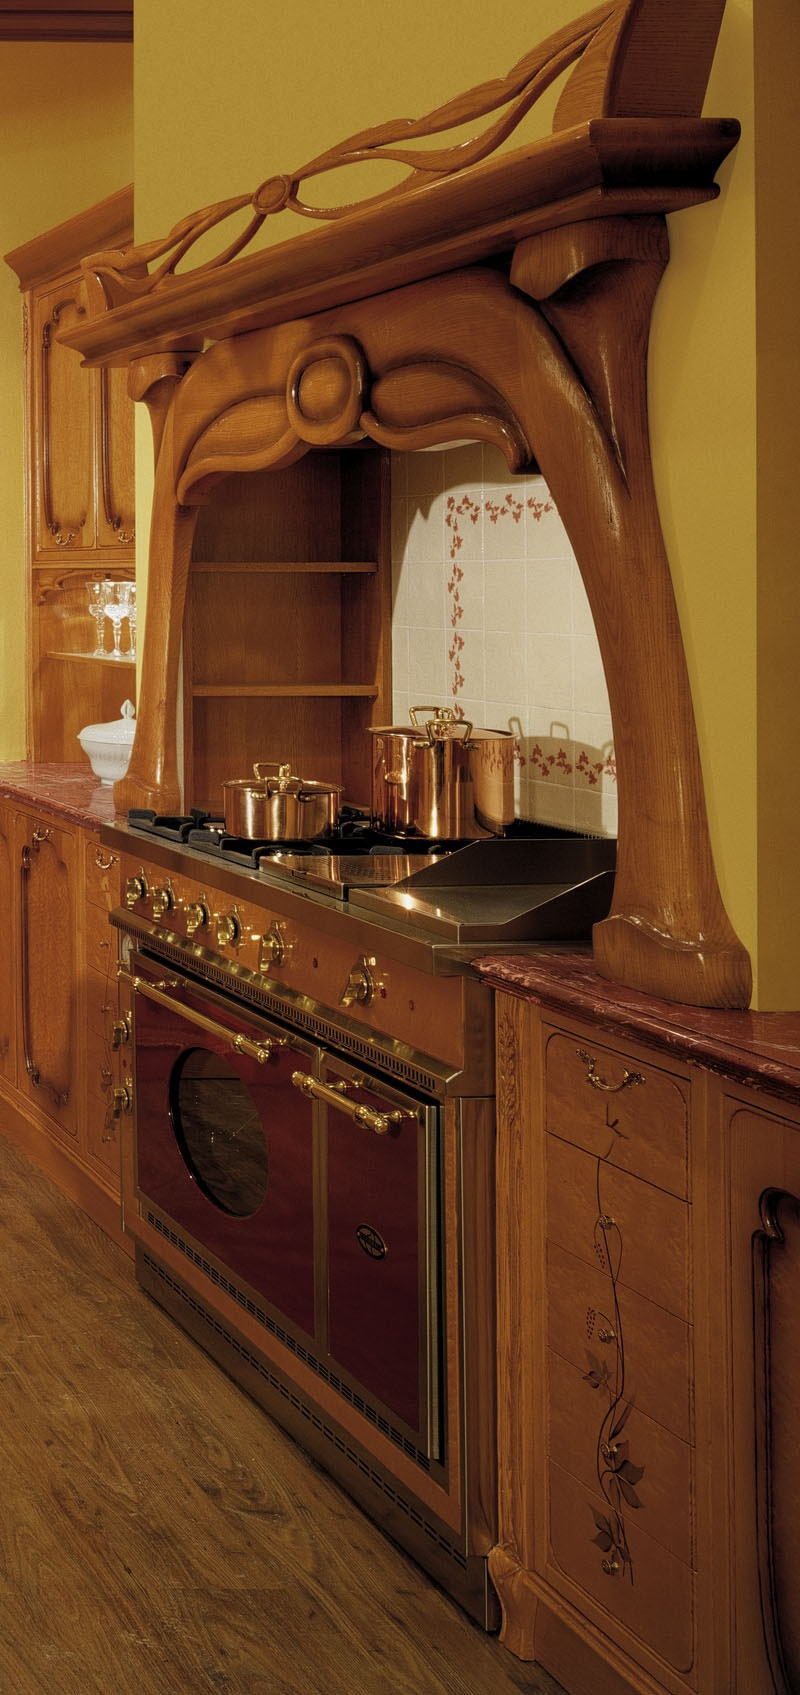 Kitchen (kitchen set) Cadore, Marie Claire